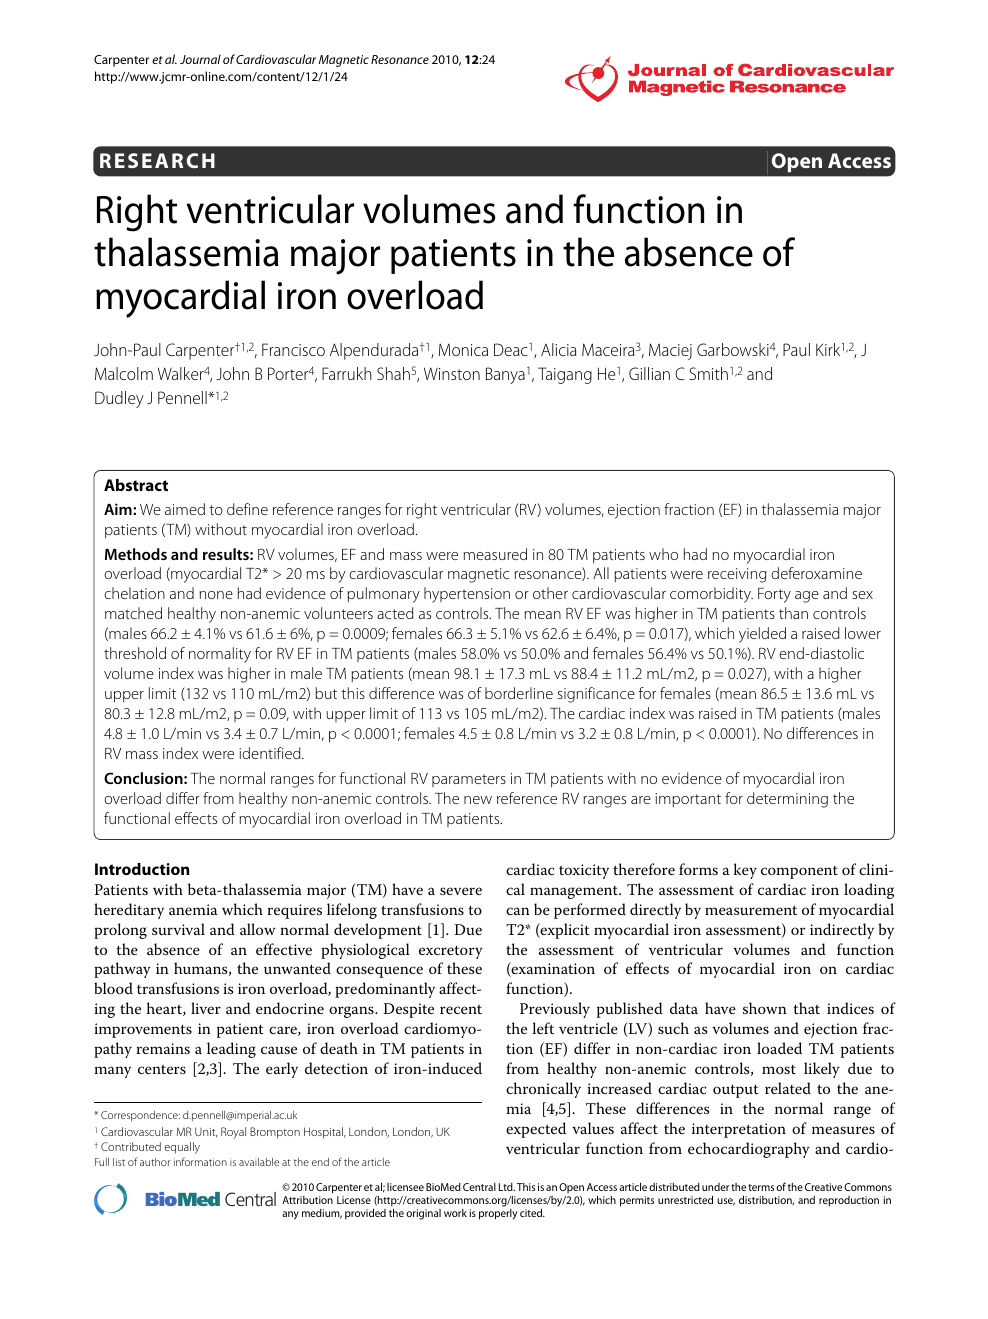 Right ventricular volumes and function in thalassemia major patients ...